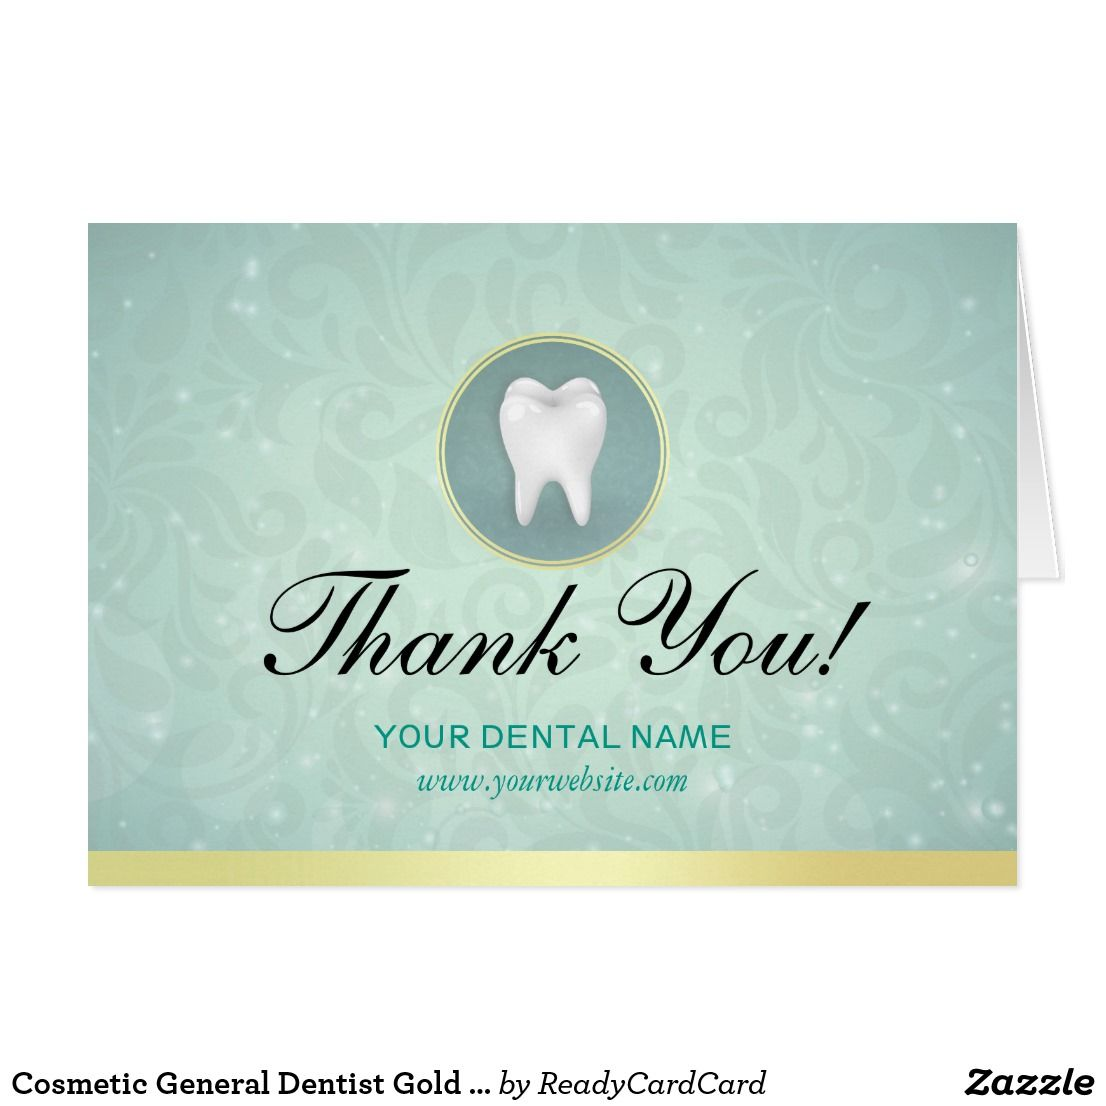 Cosmetic General Dentist Gold Turquoise Thank You Zazzle Com Custom Thank You Cards Dentist Thank You Cards